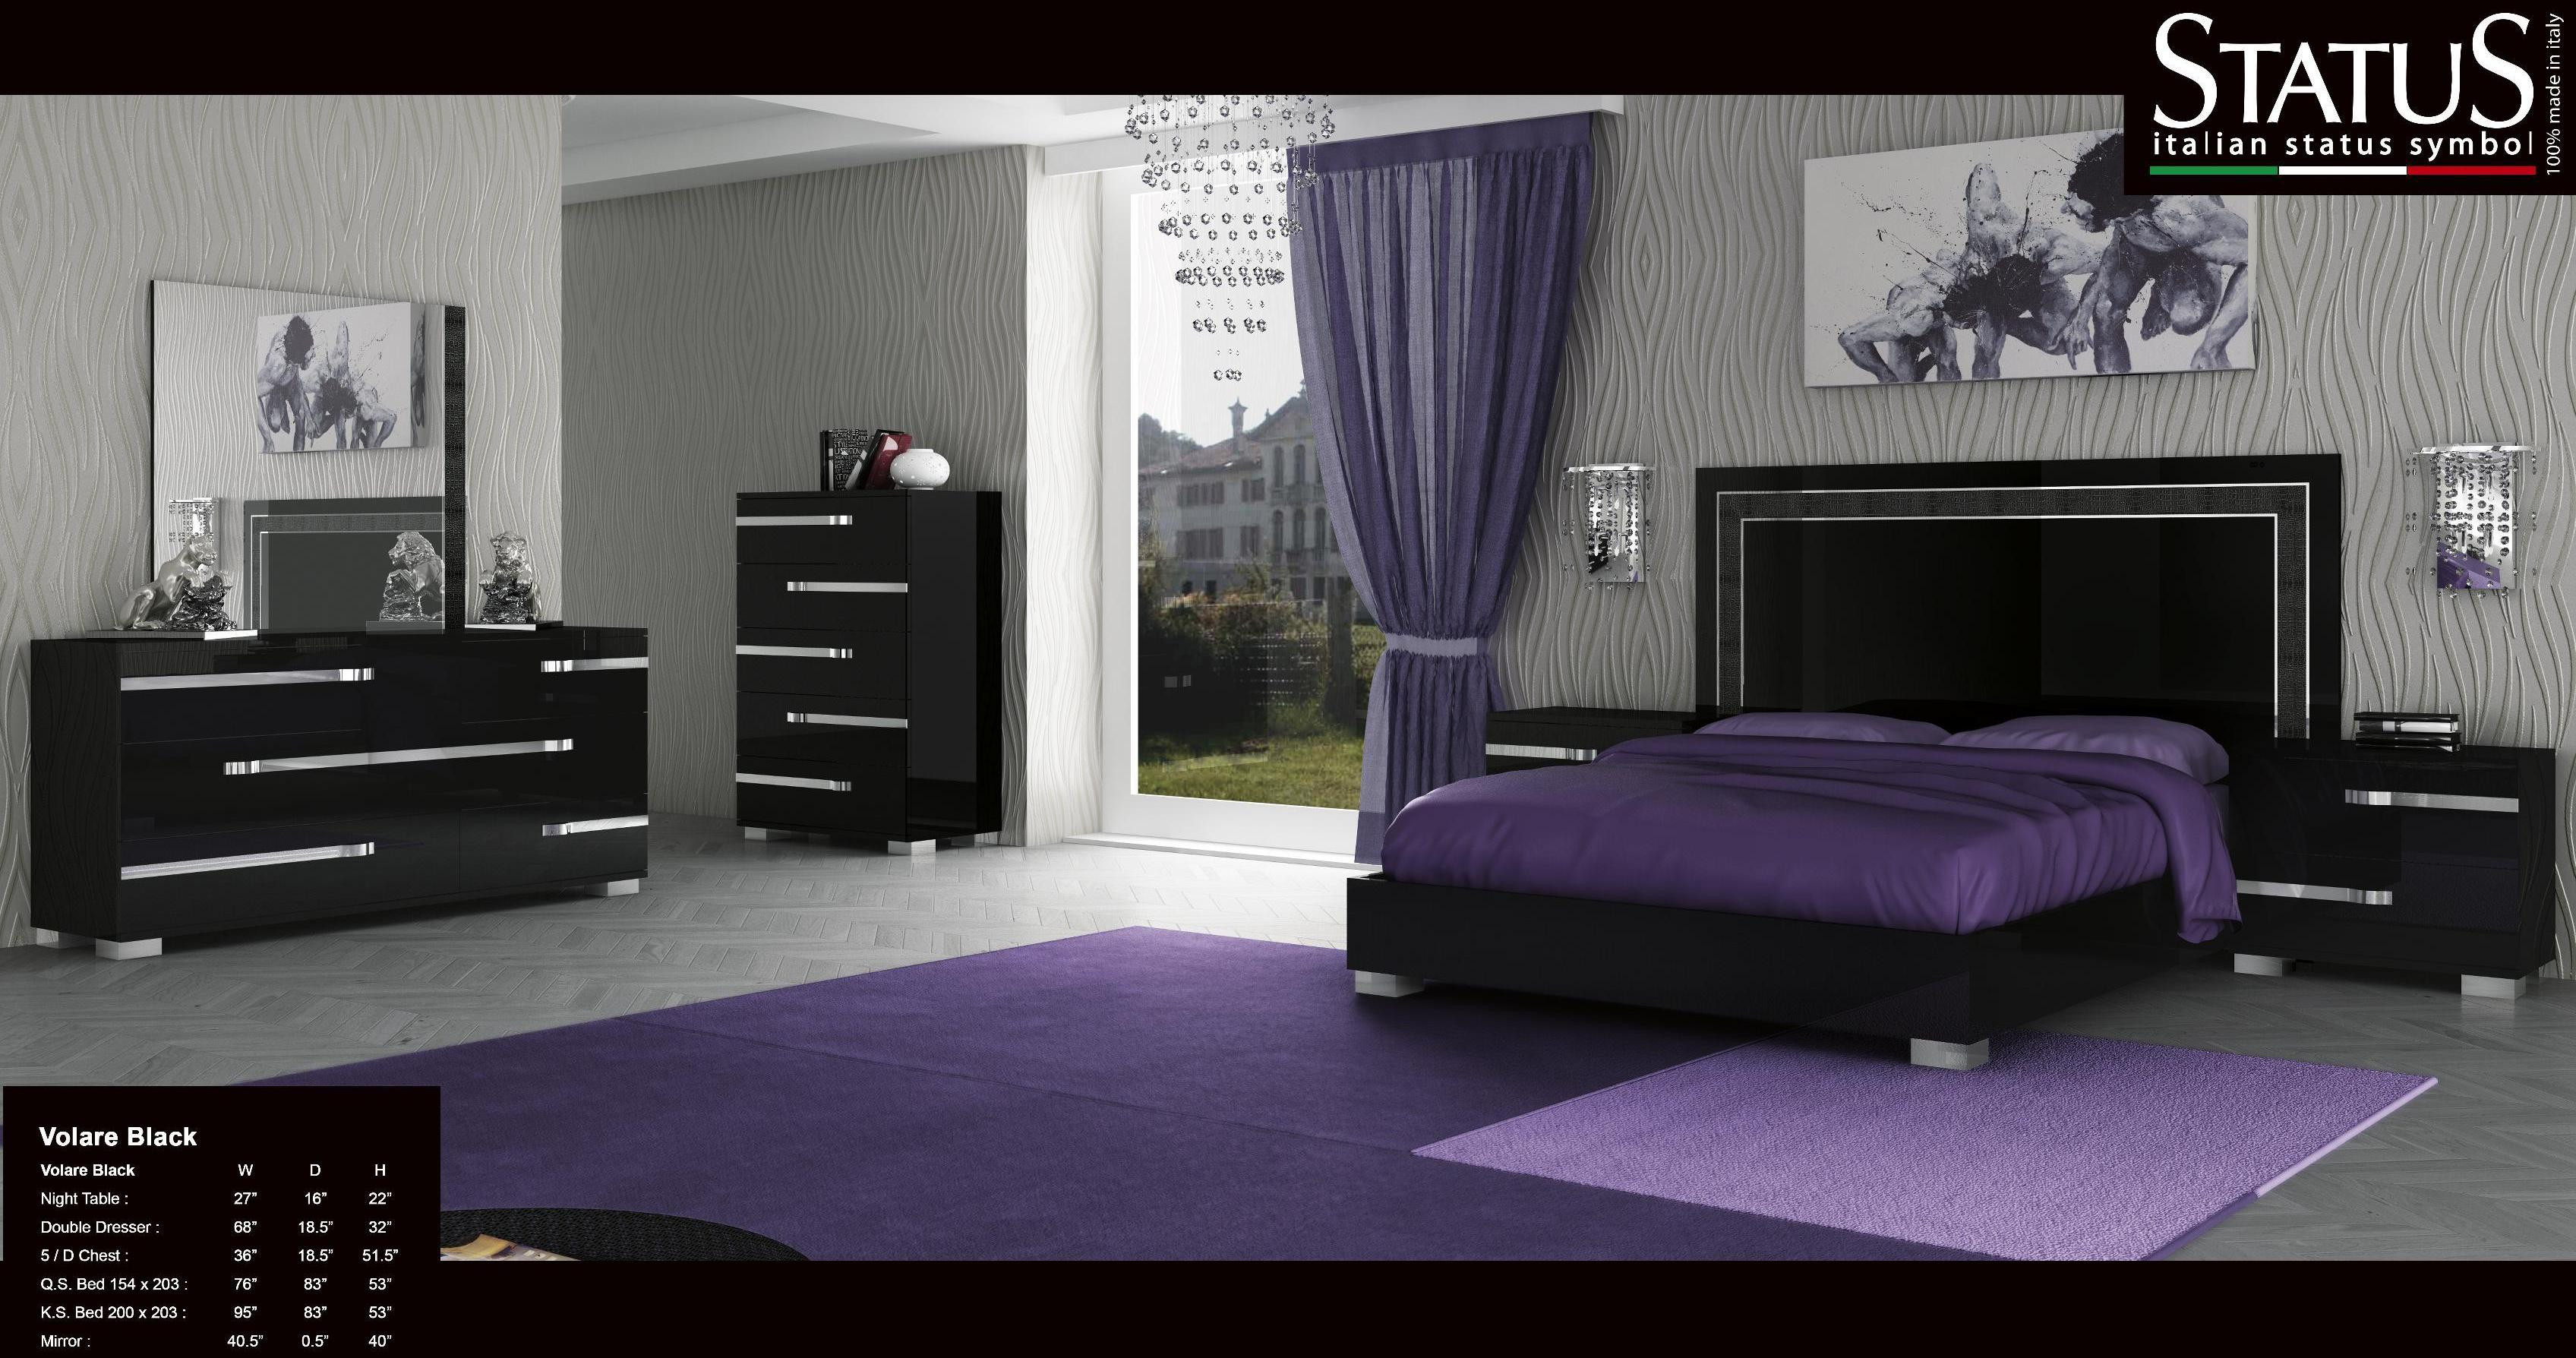 Best ideas about Black Bedroom Set . Save or Pin VOLARE KING SIZE MODERN BLACK BEDROOM SET 5PC MADE IN Now.